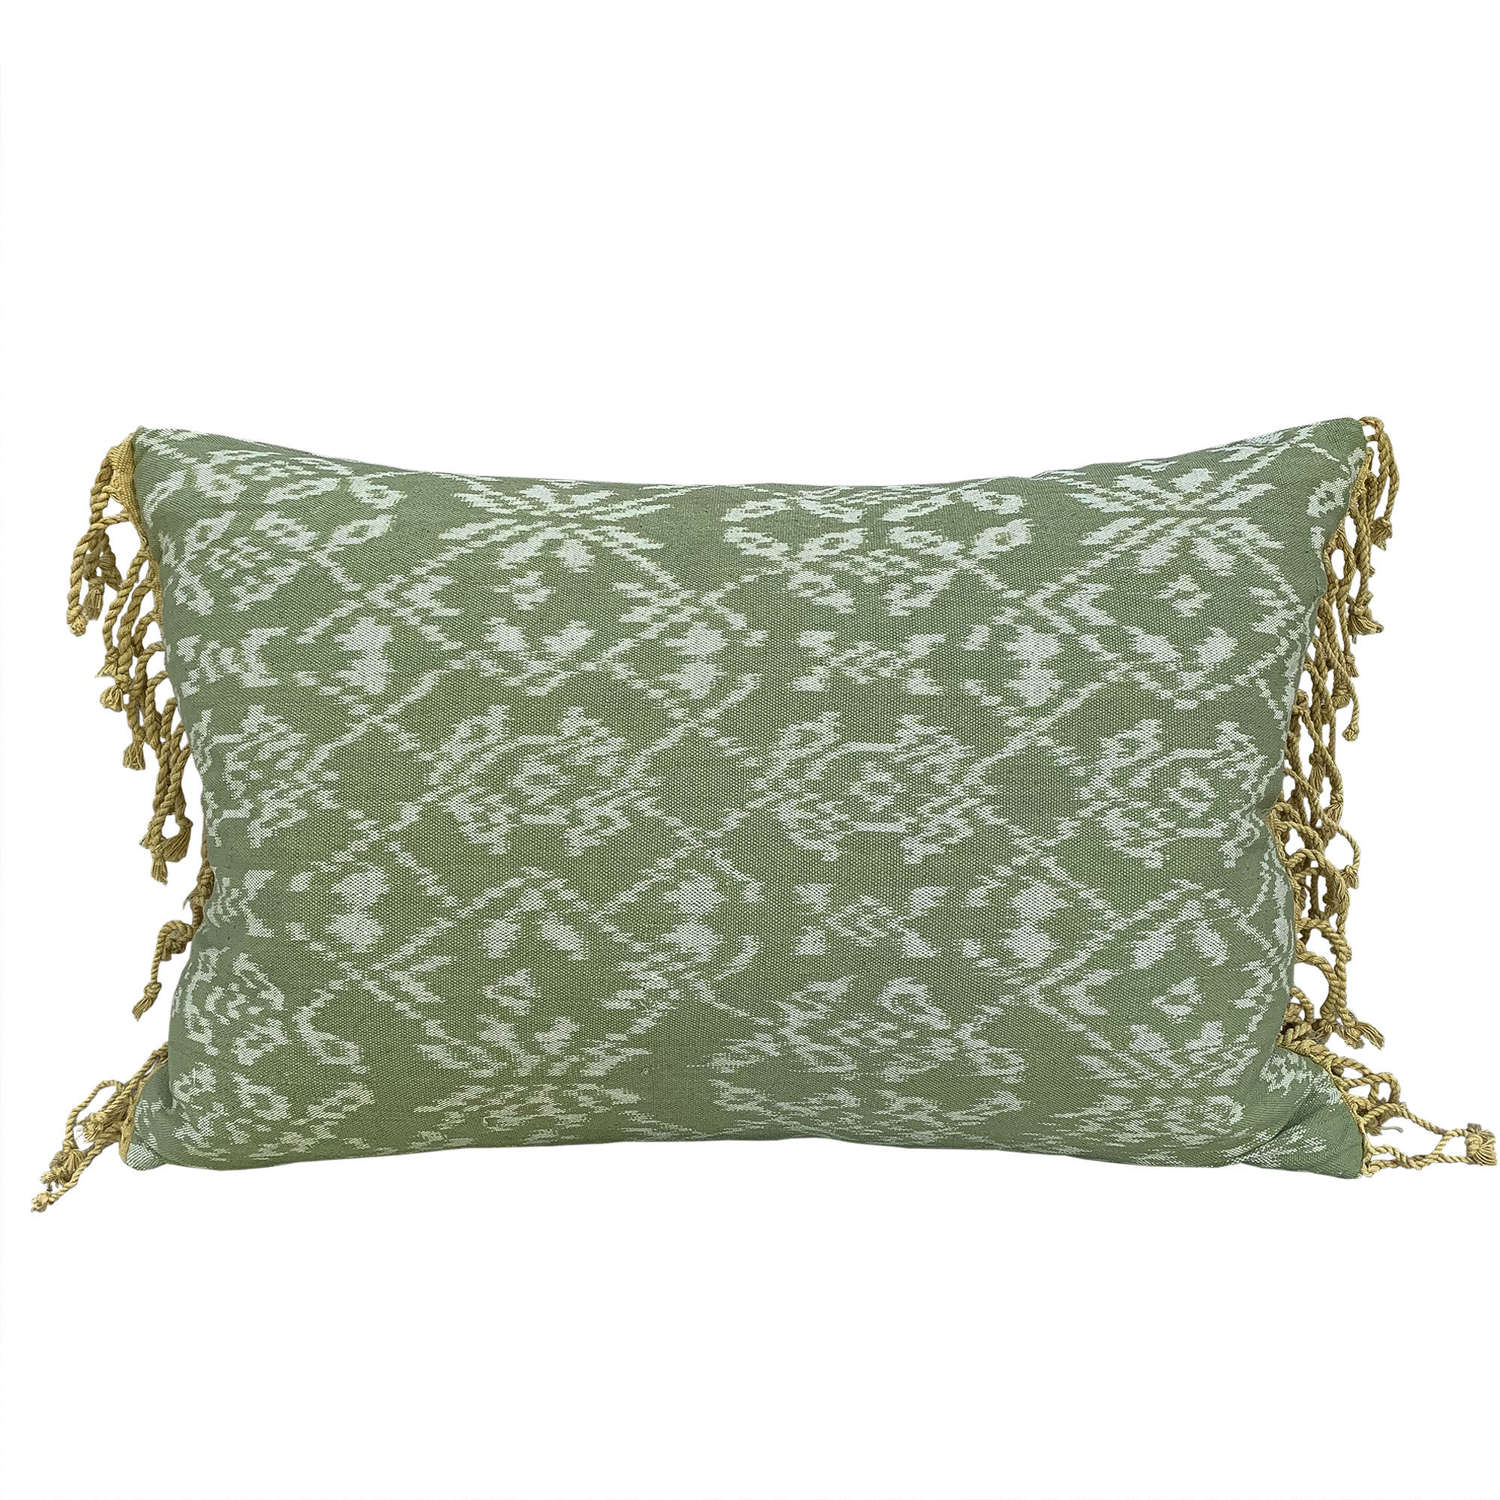 Rote ikat cushion green with yellow tassels